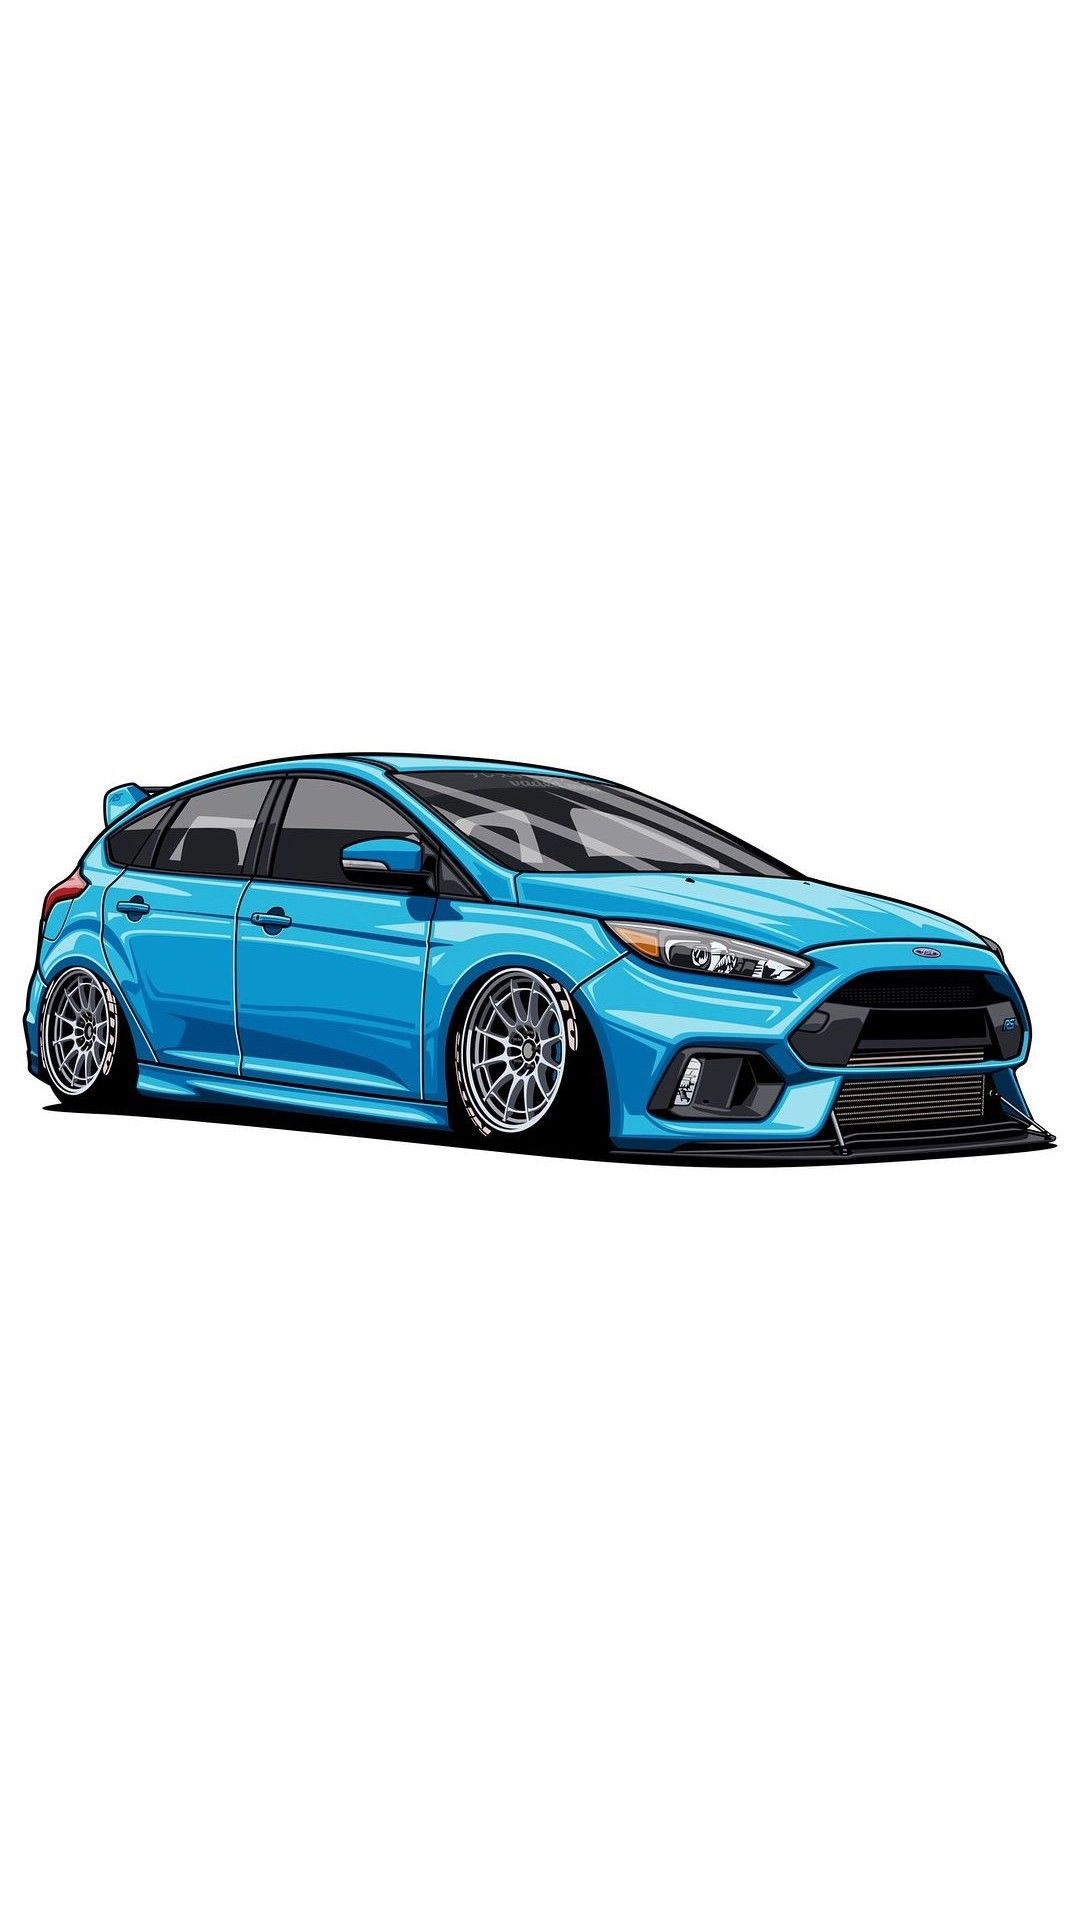 1080x1920 ford focus rs car art art cars, jdm cars, ford focus